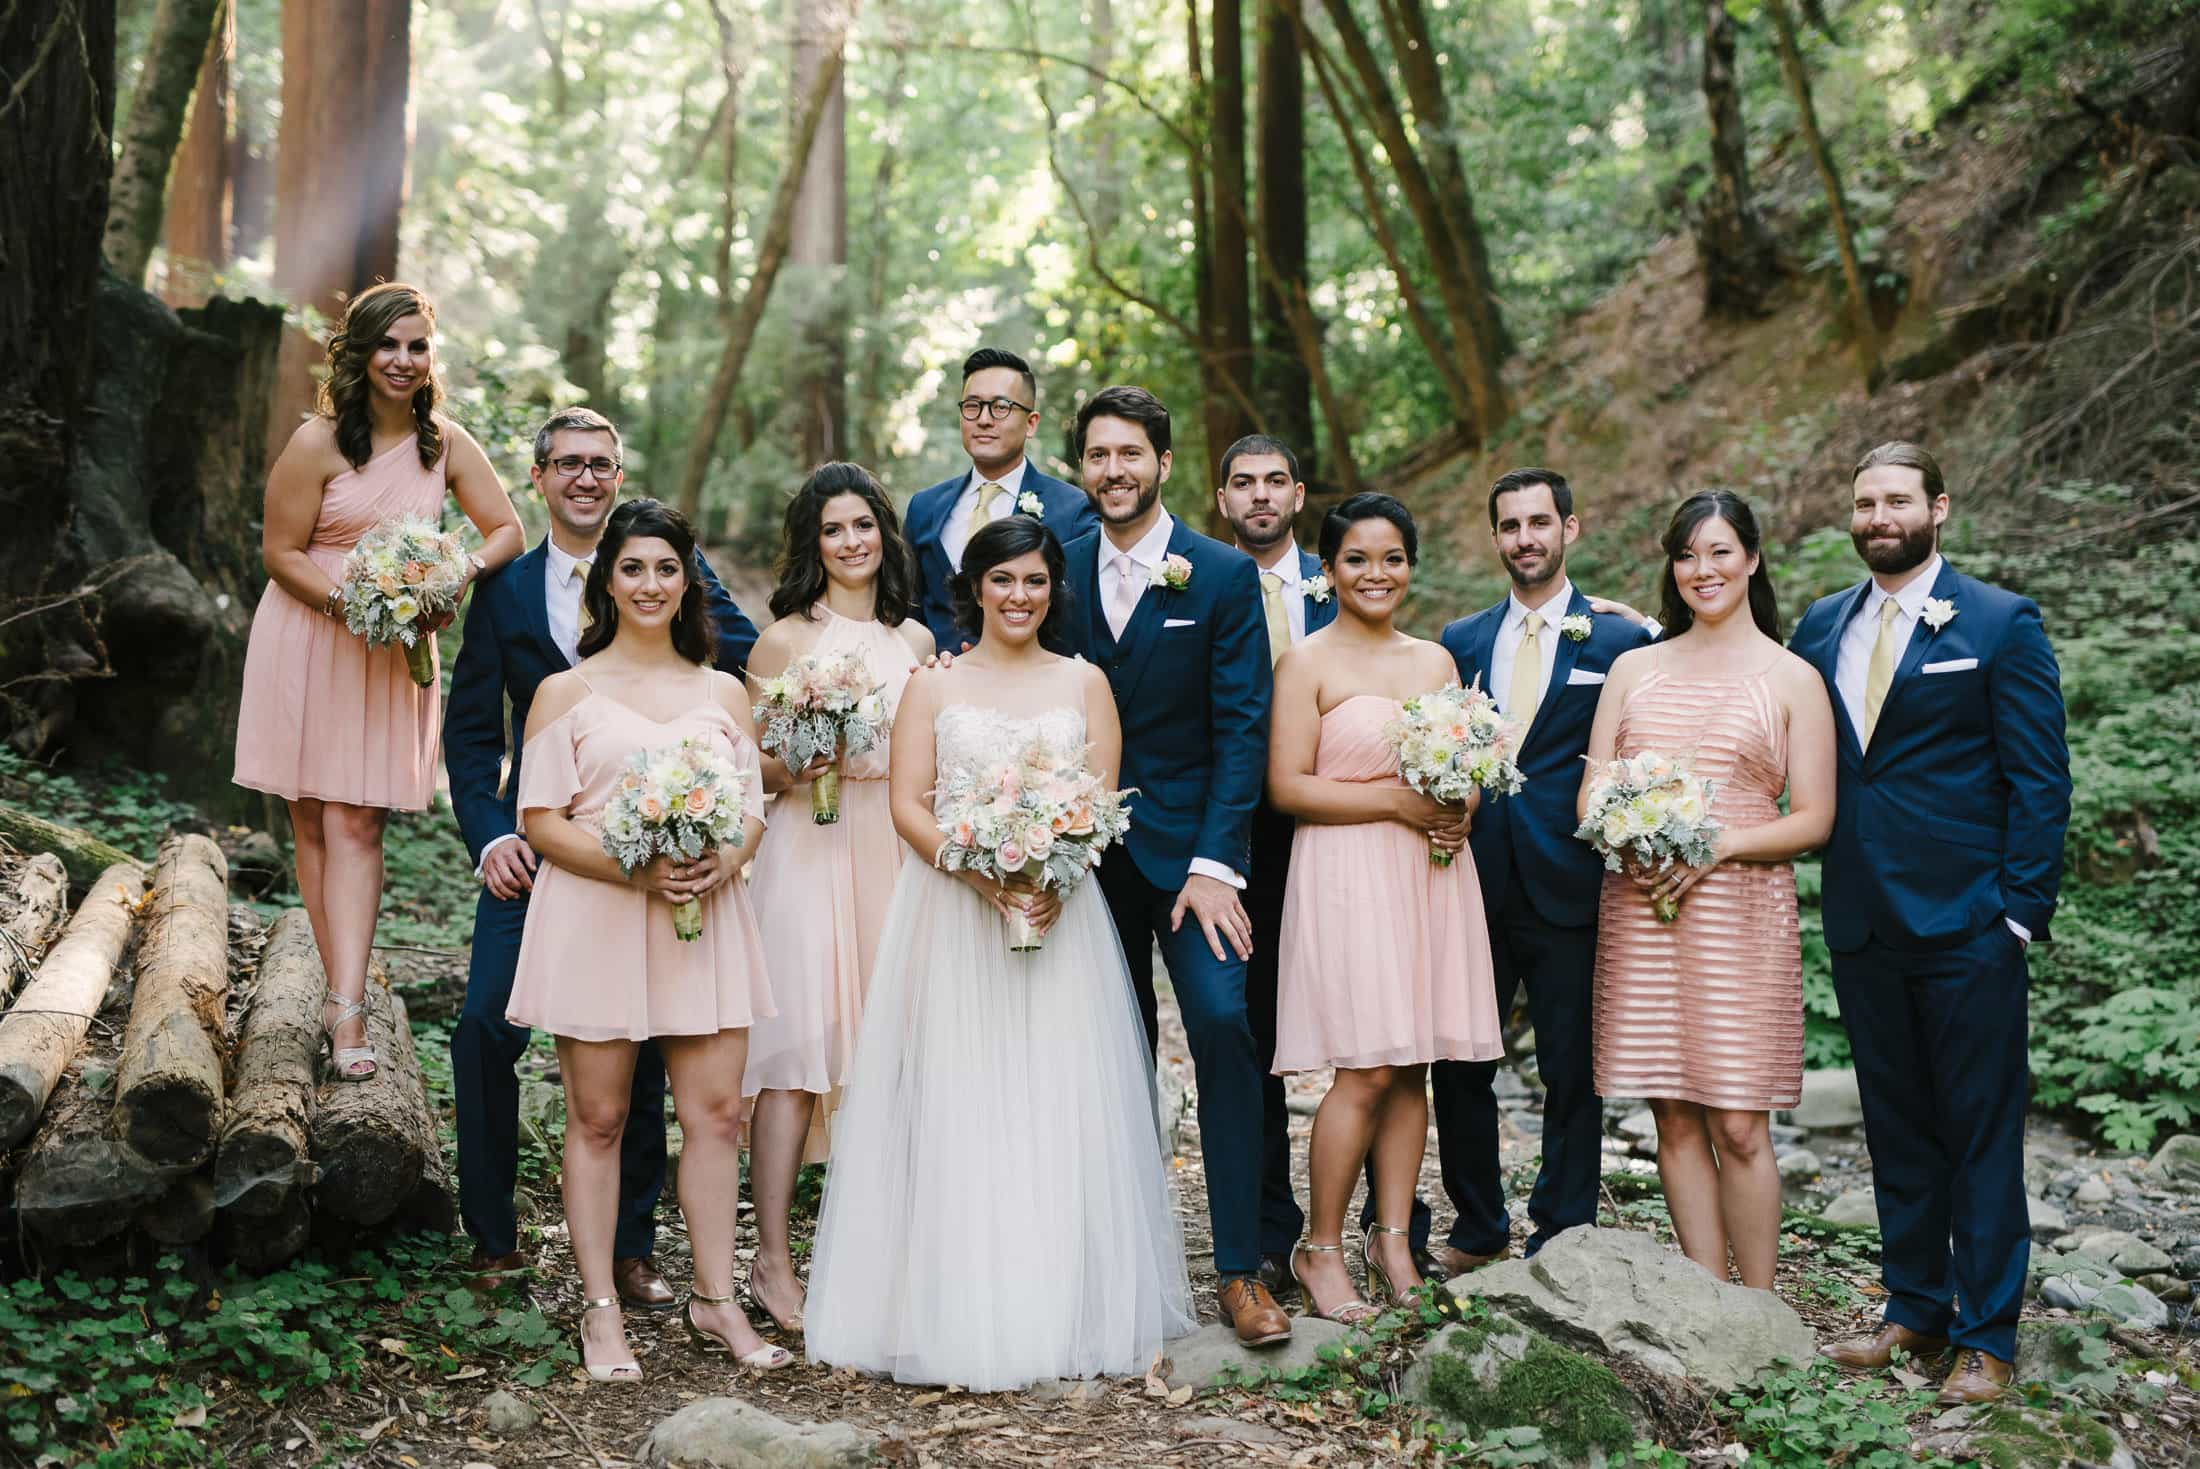 Saratoga Springs Picnic area wedding party portrait in forest